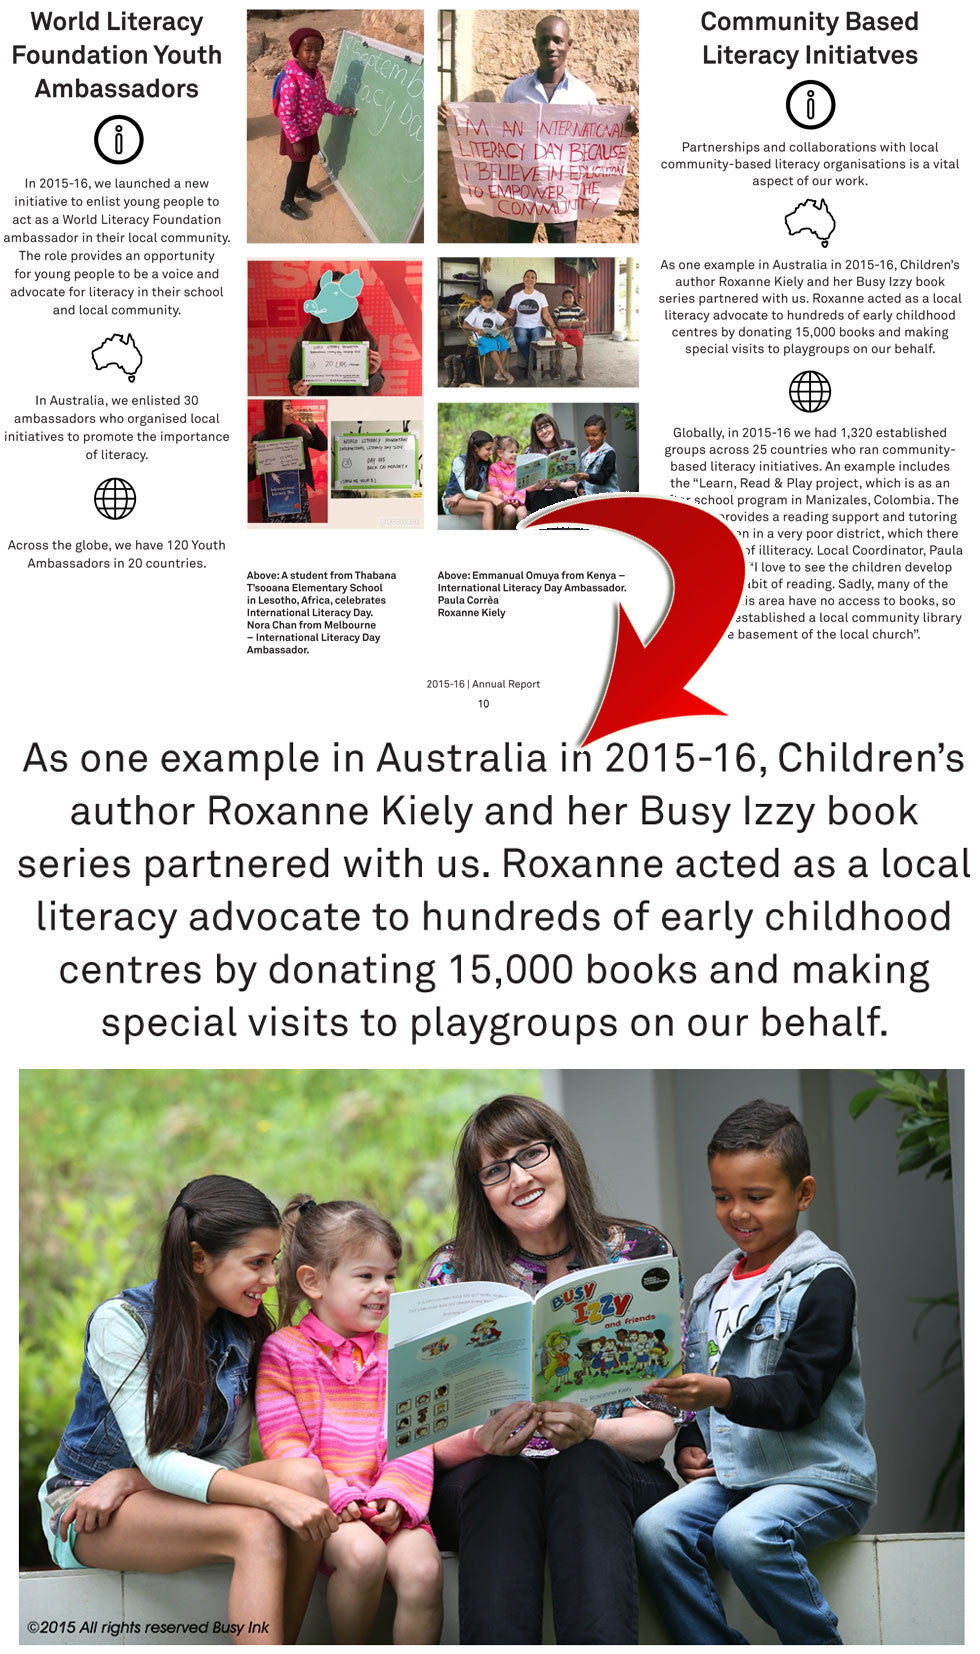 World Literacy Foundation Annual Report 2015-16 referencing Roxanne Kiely and the Busy Izzy project